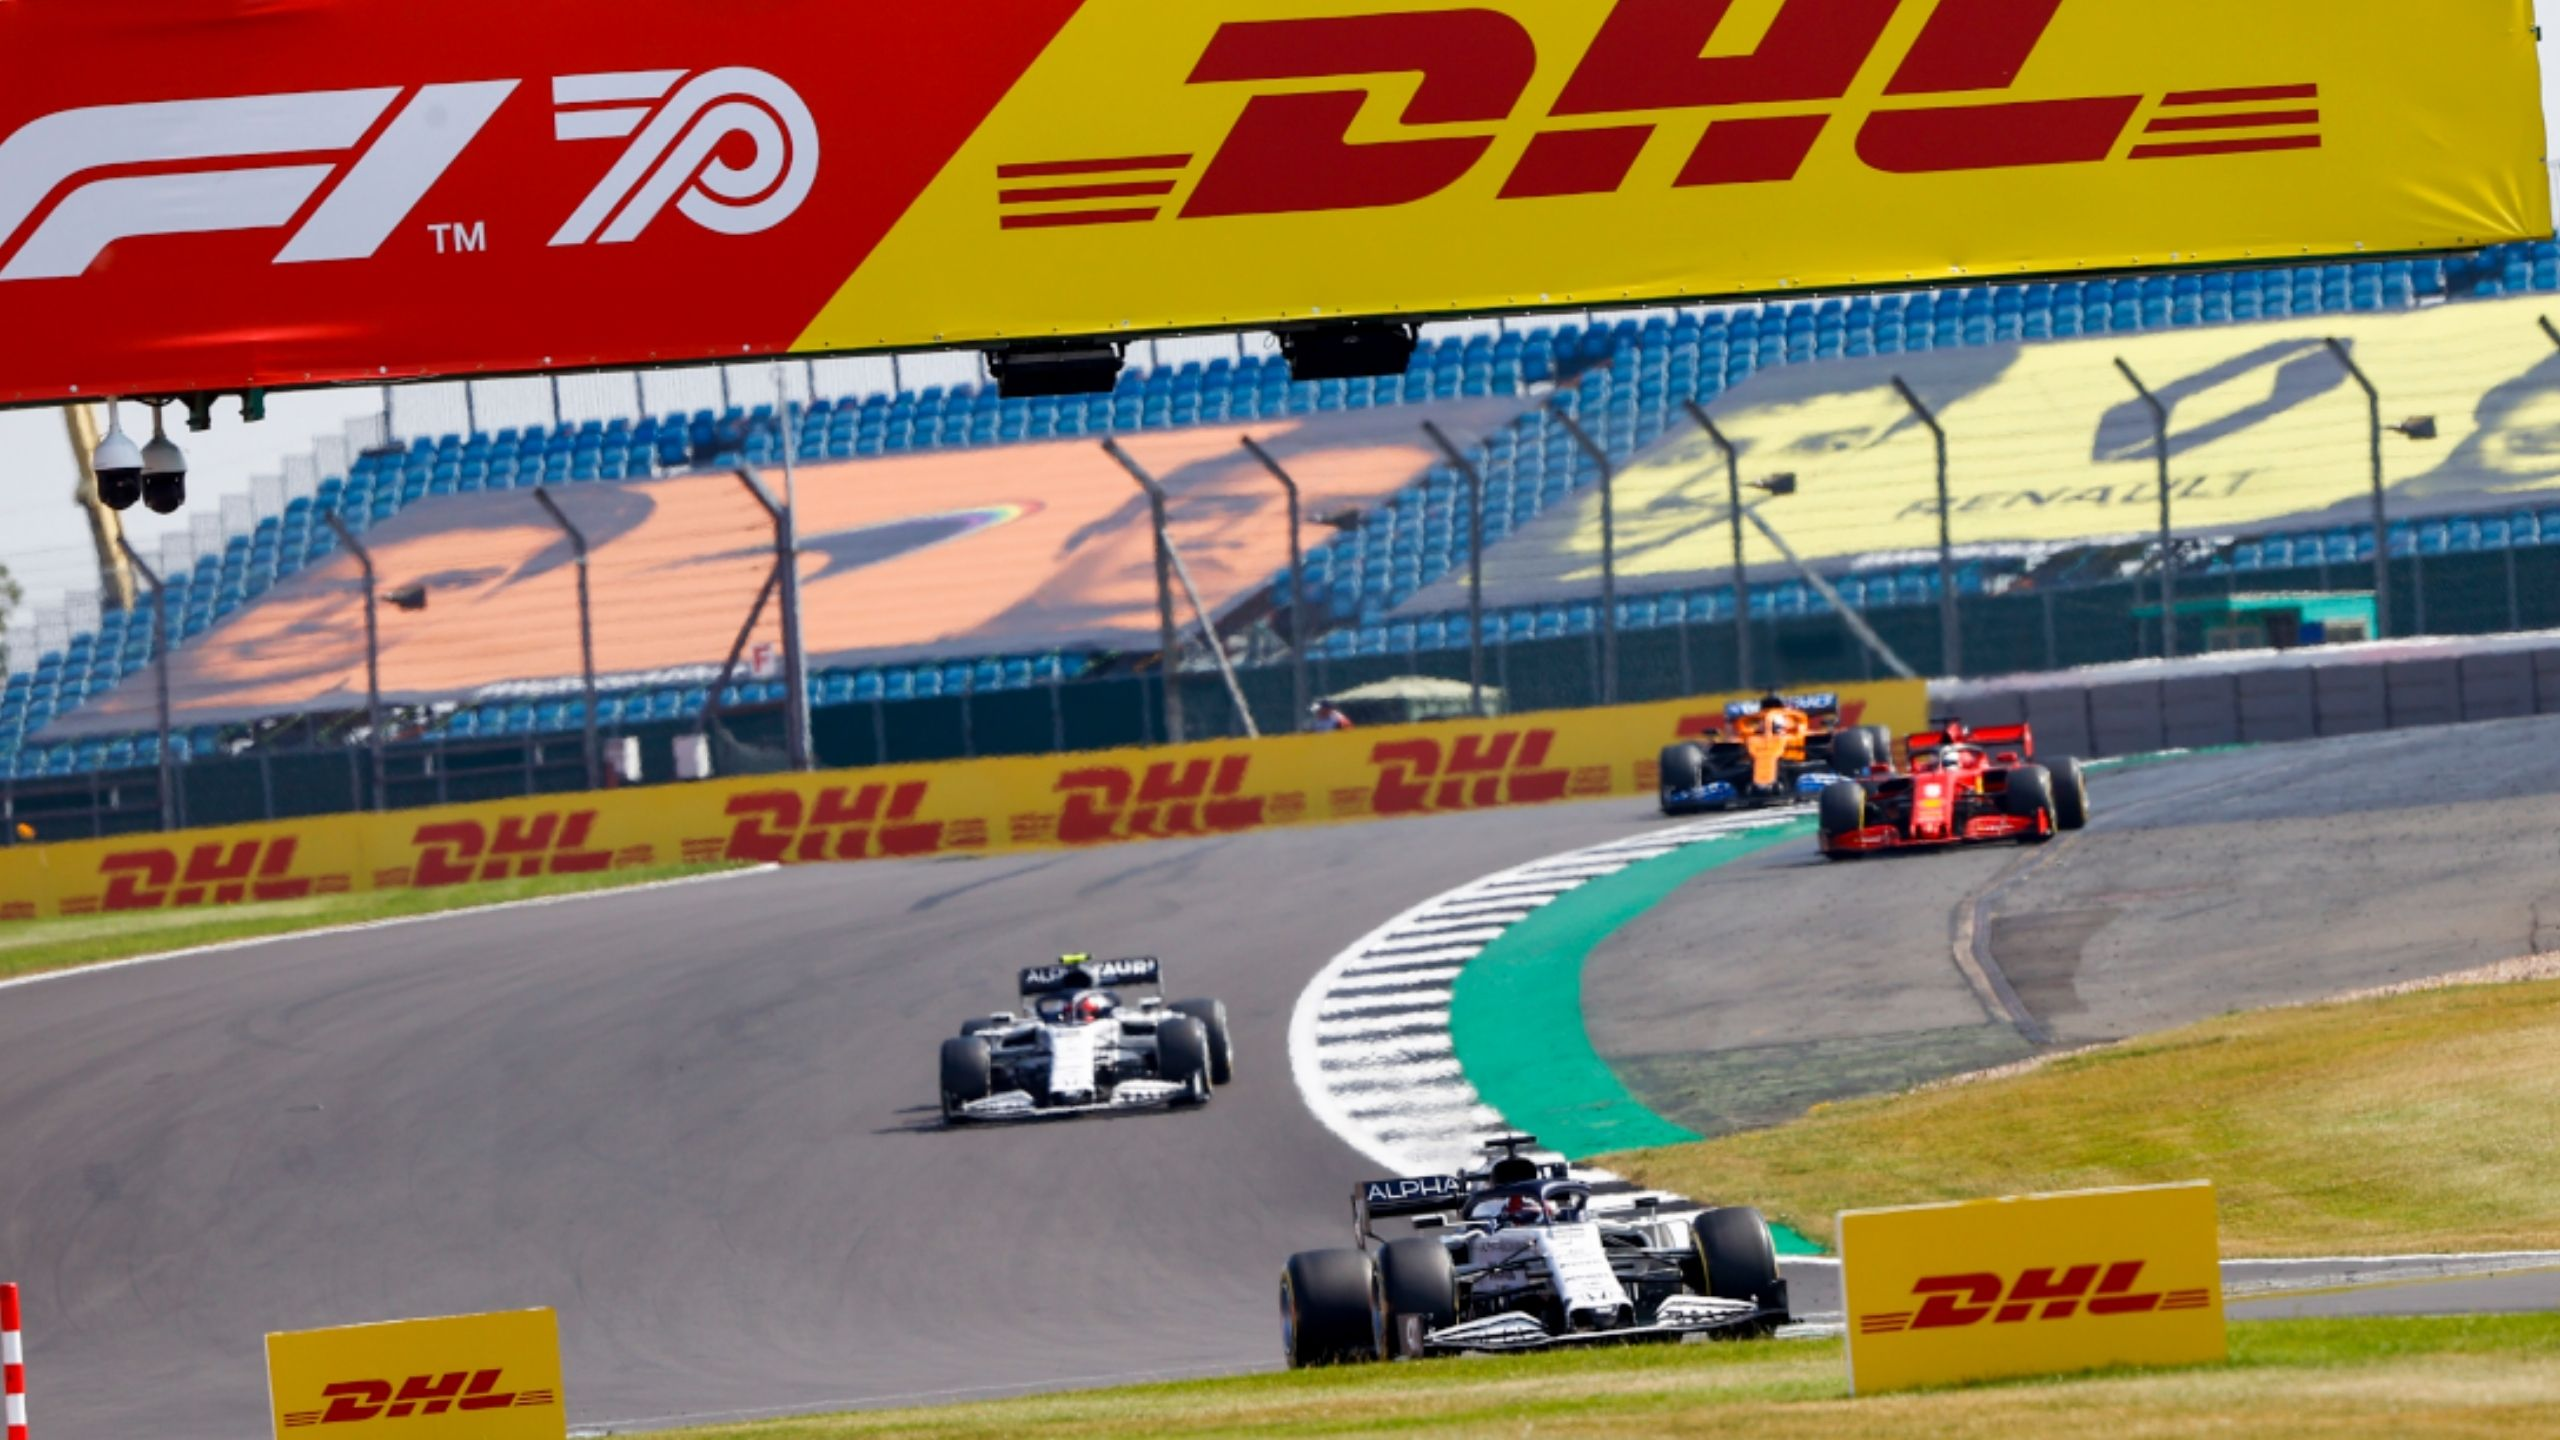 """""""We are looking forward to defending our title"""" - Formula 1 renews longest-standing Global Partnership with DHL"""